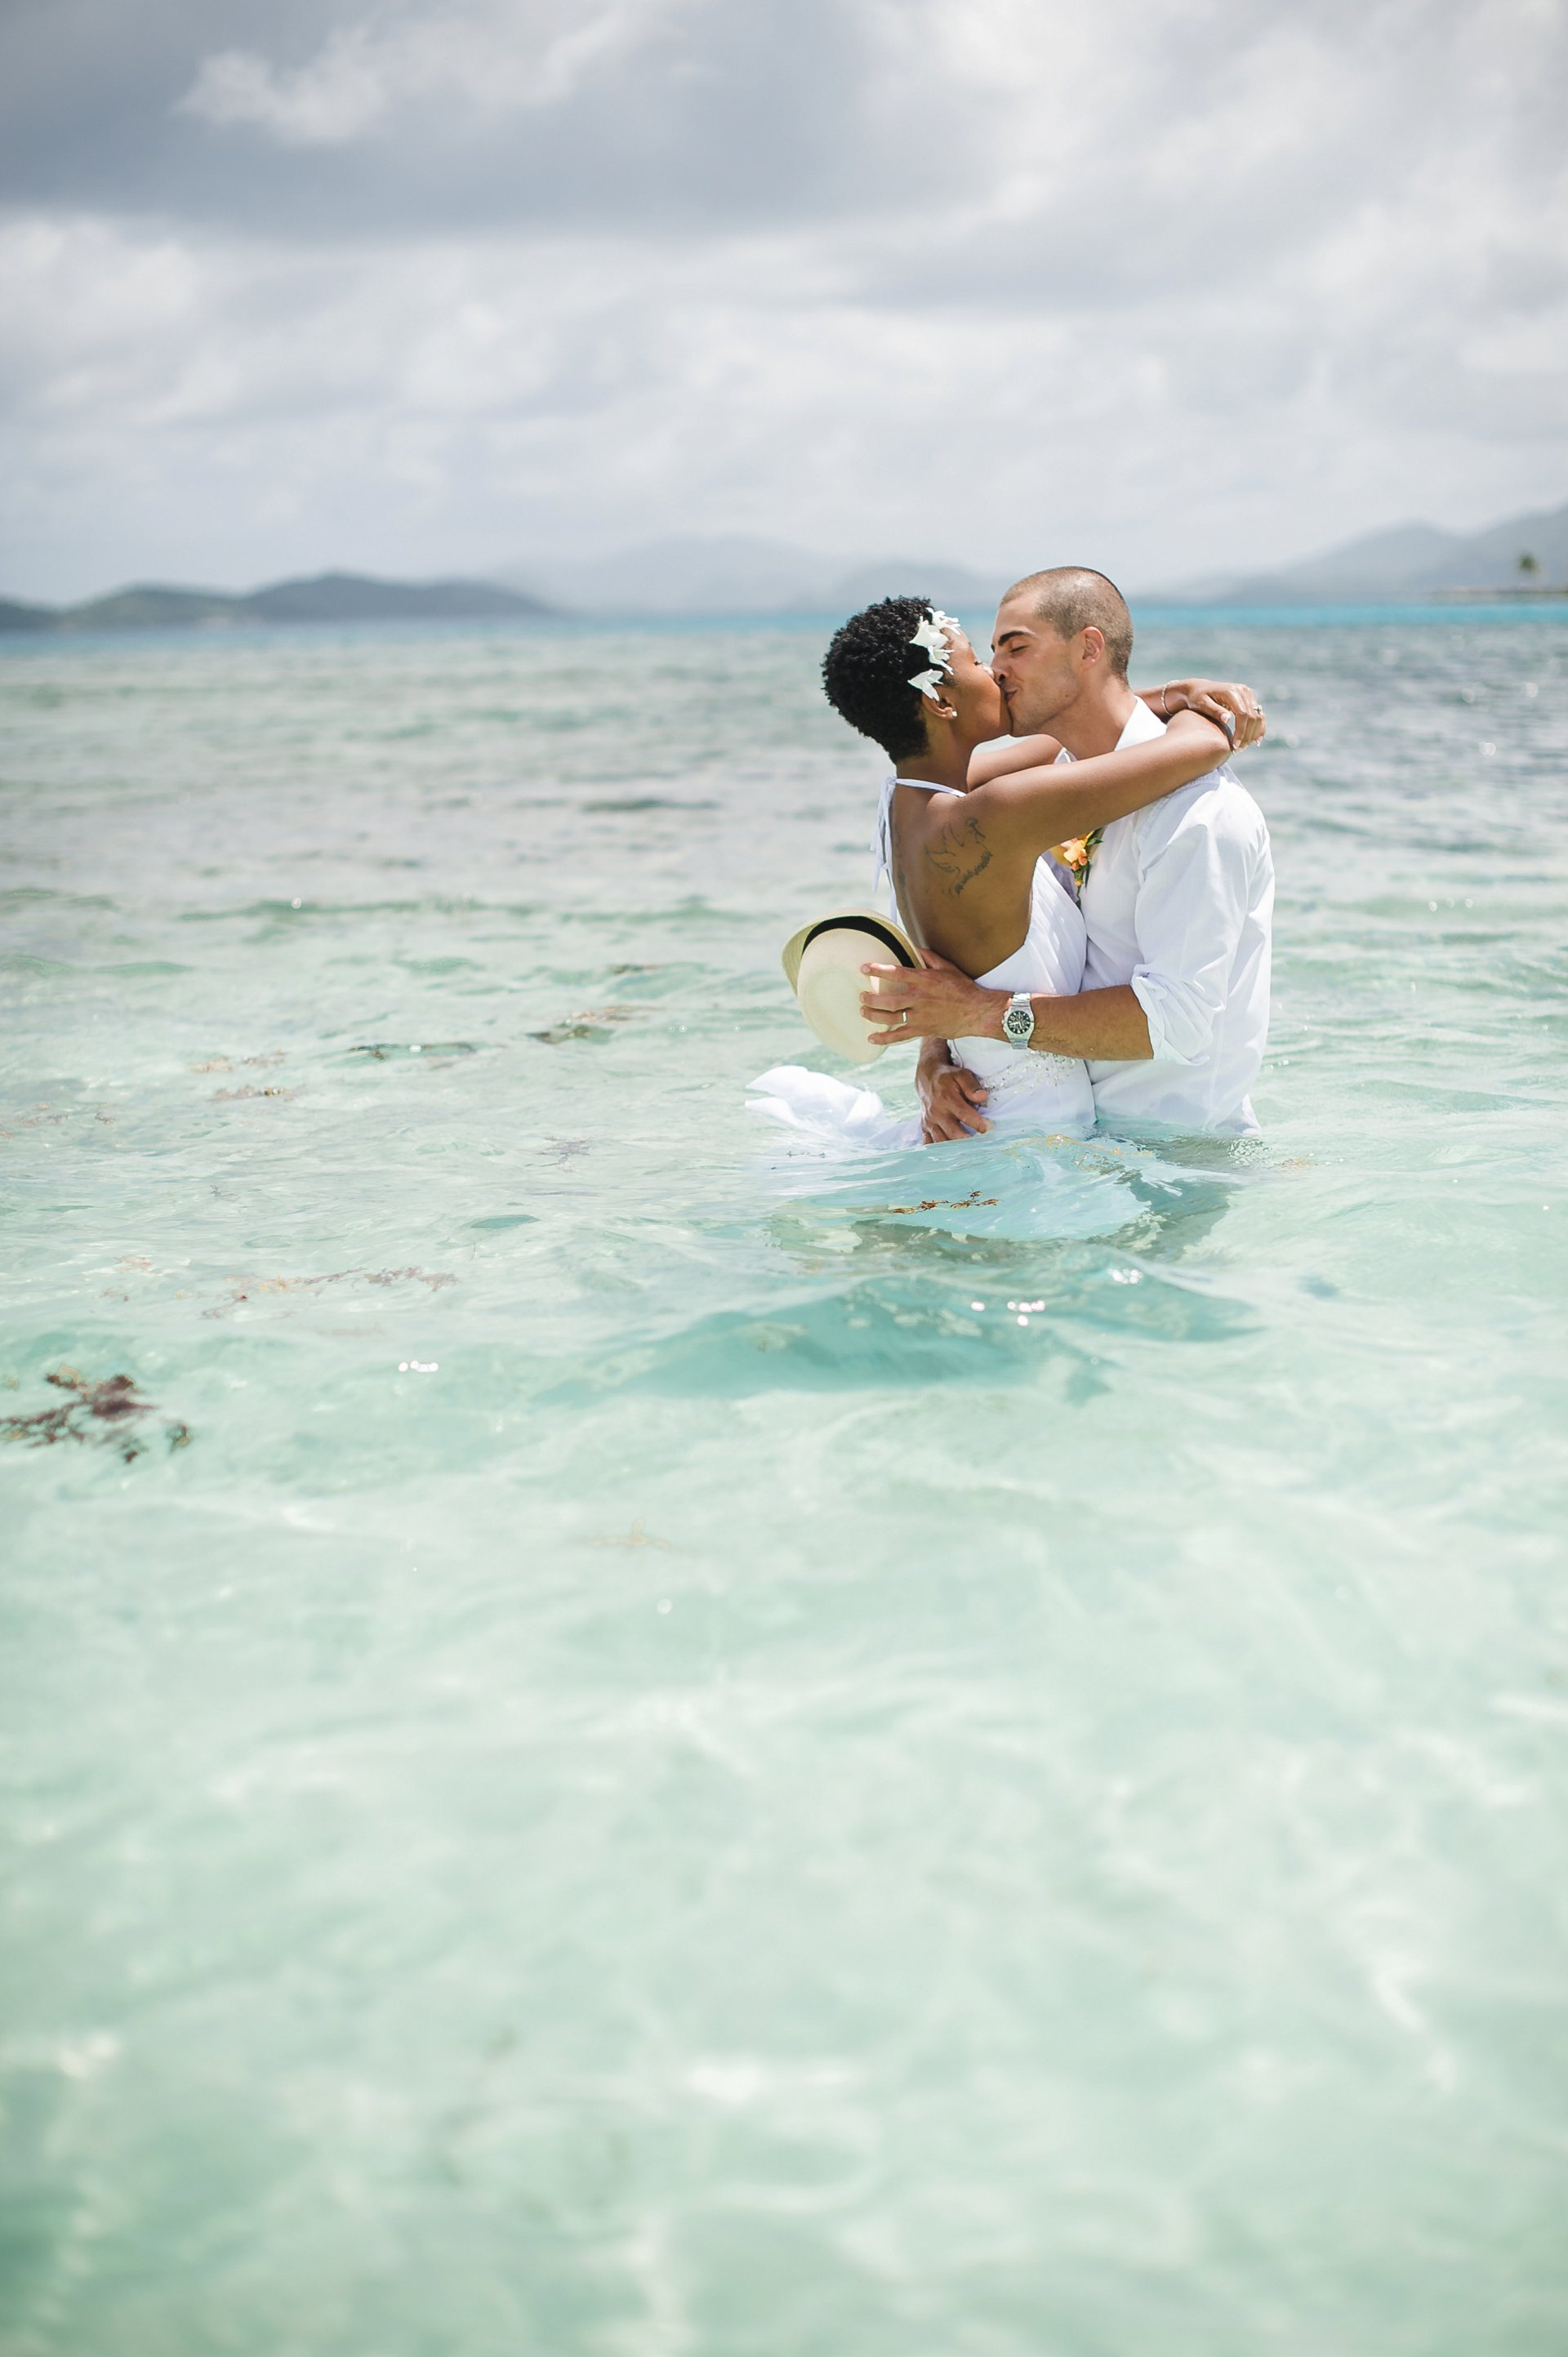 Trash the dress: couple gets in the ocean at destination wedding at Lindquist Beach, St. Thomas.